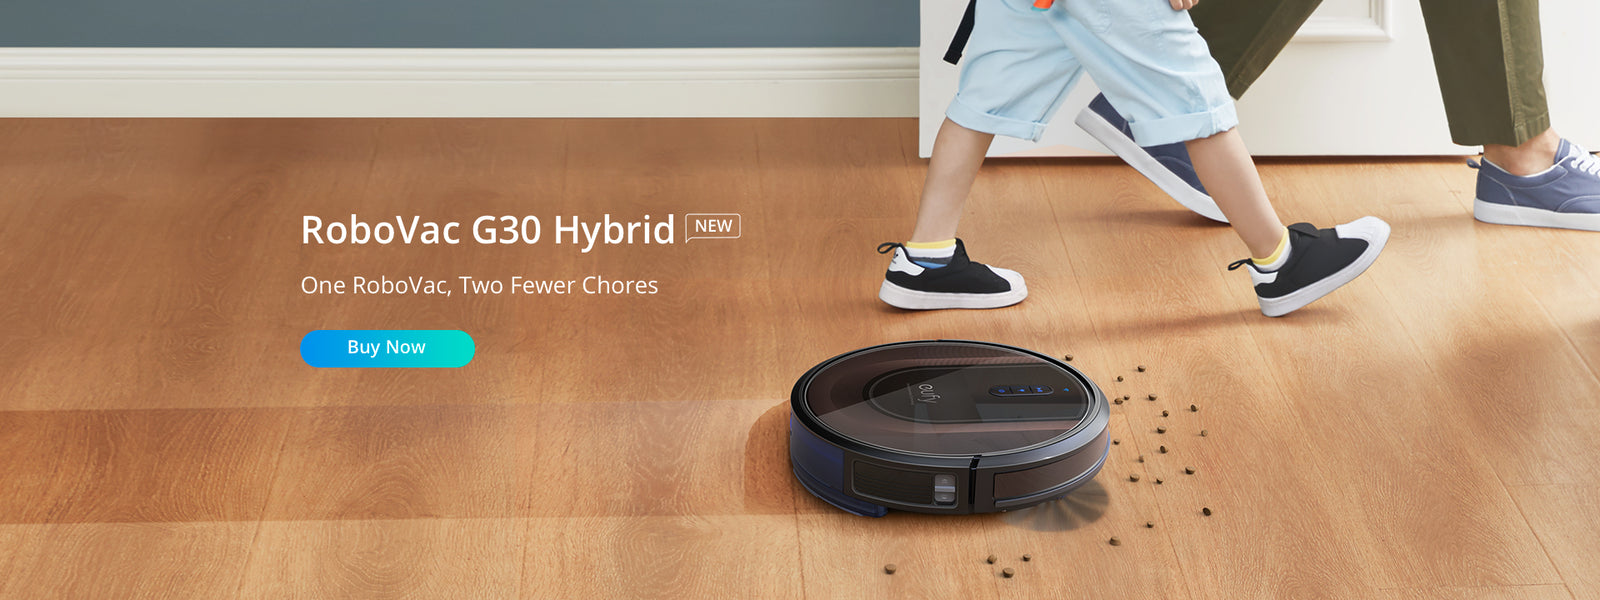 Eufy Coupon Codes - RoboVac G30 Hybrid @ just $369.99